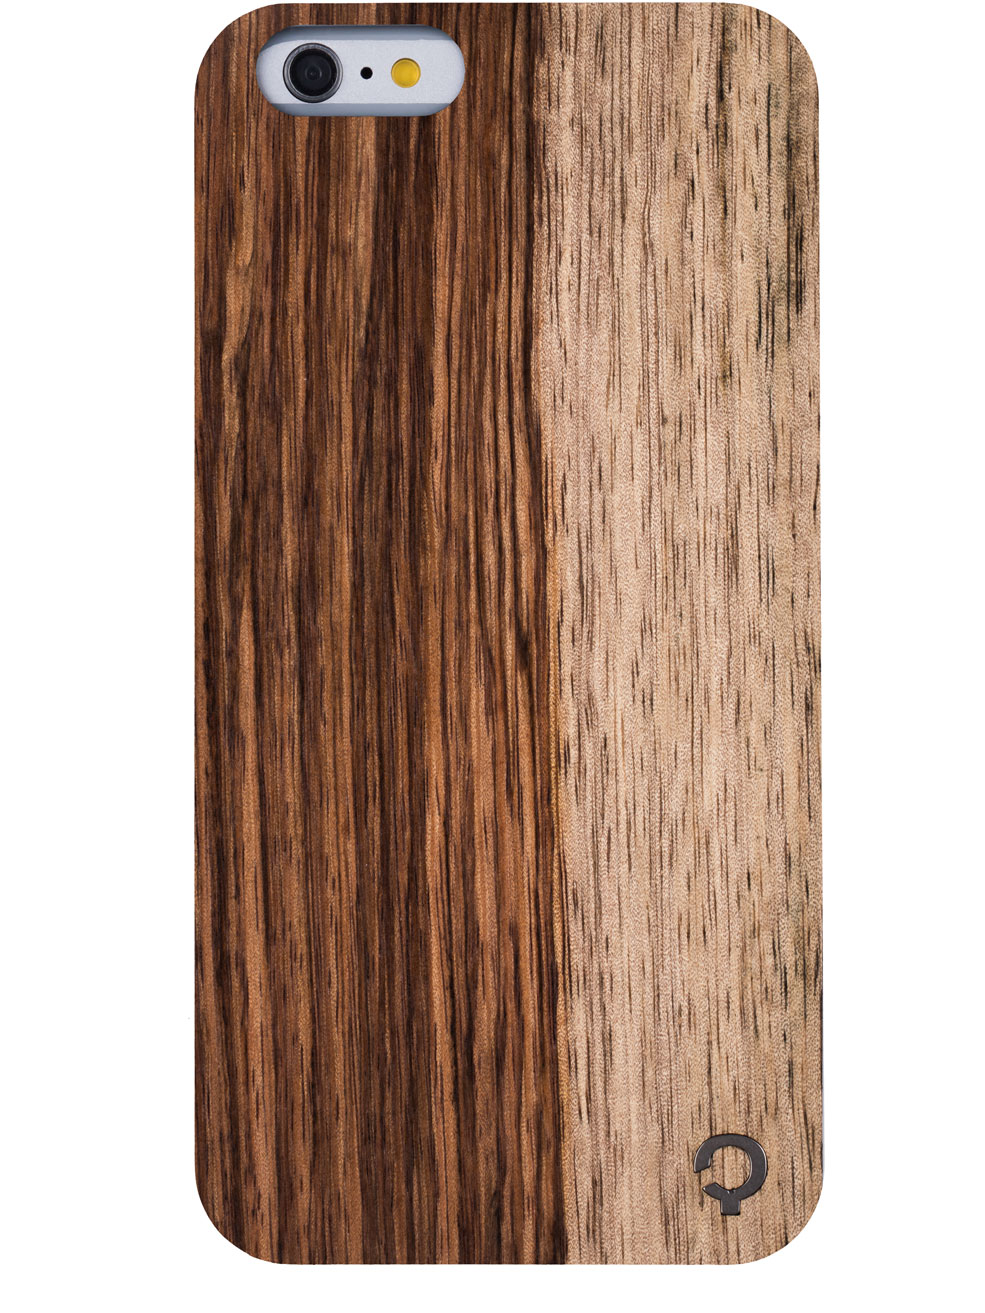 Wooden-case-iPhone-6-plus-Premium-Mango